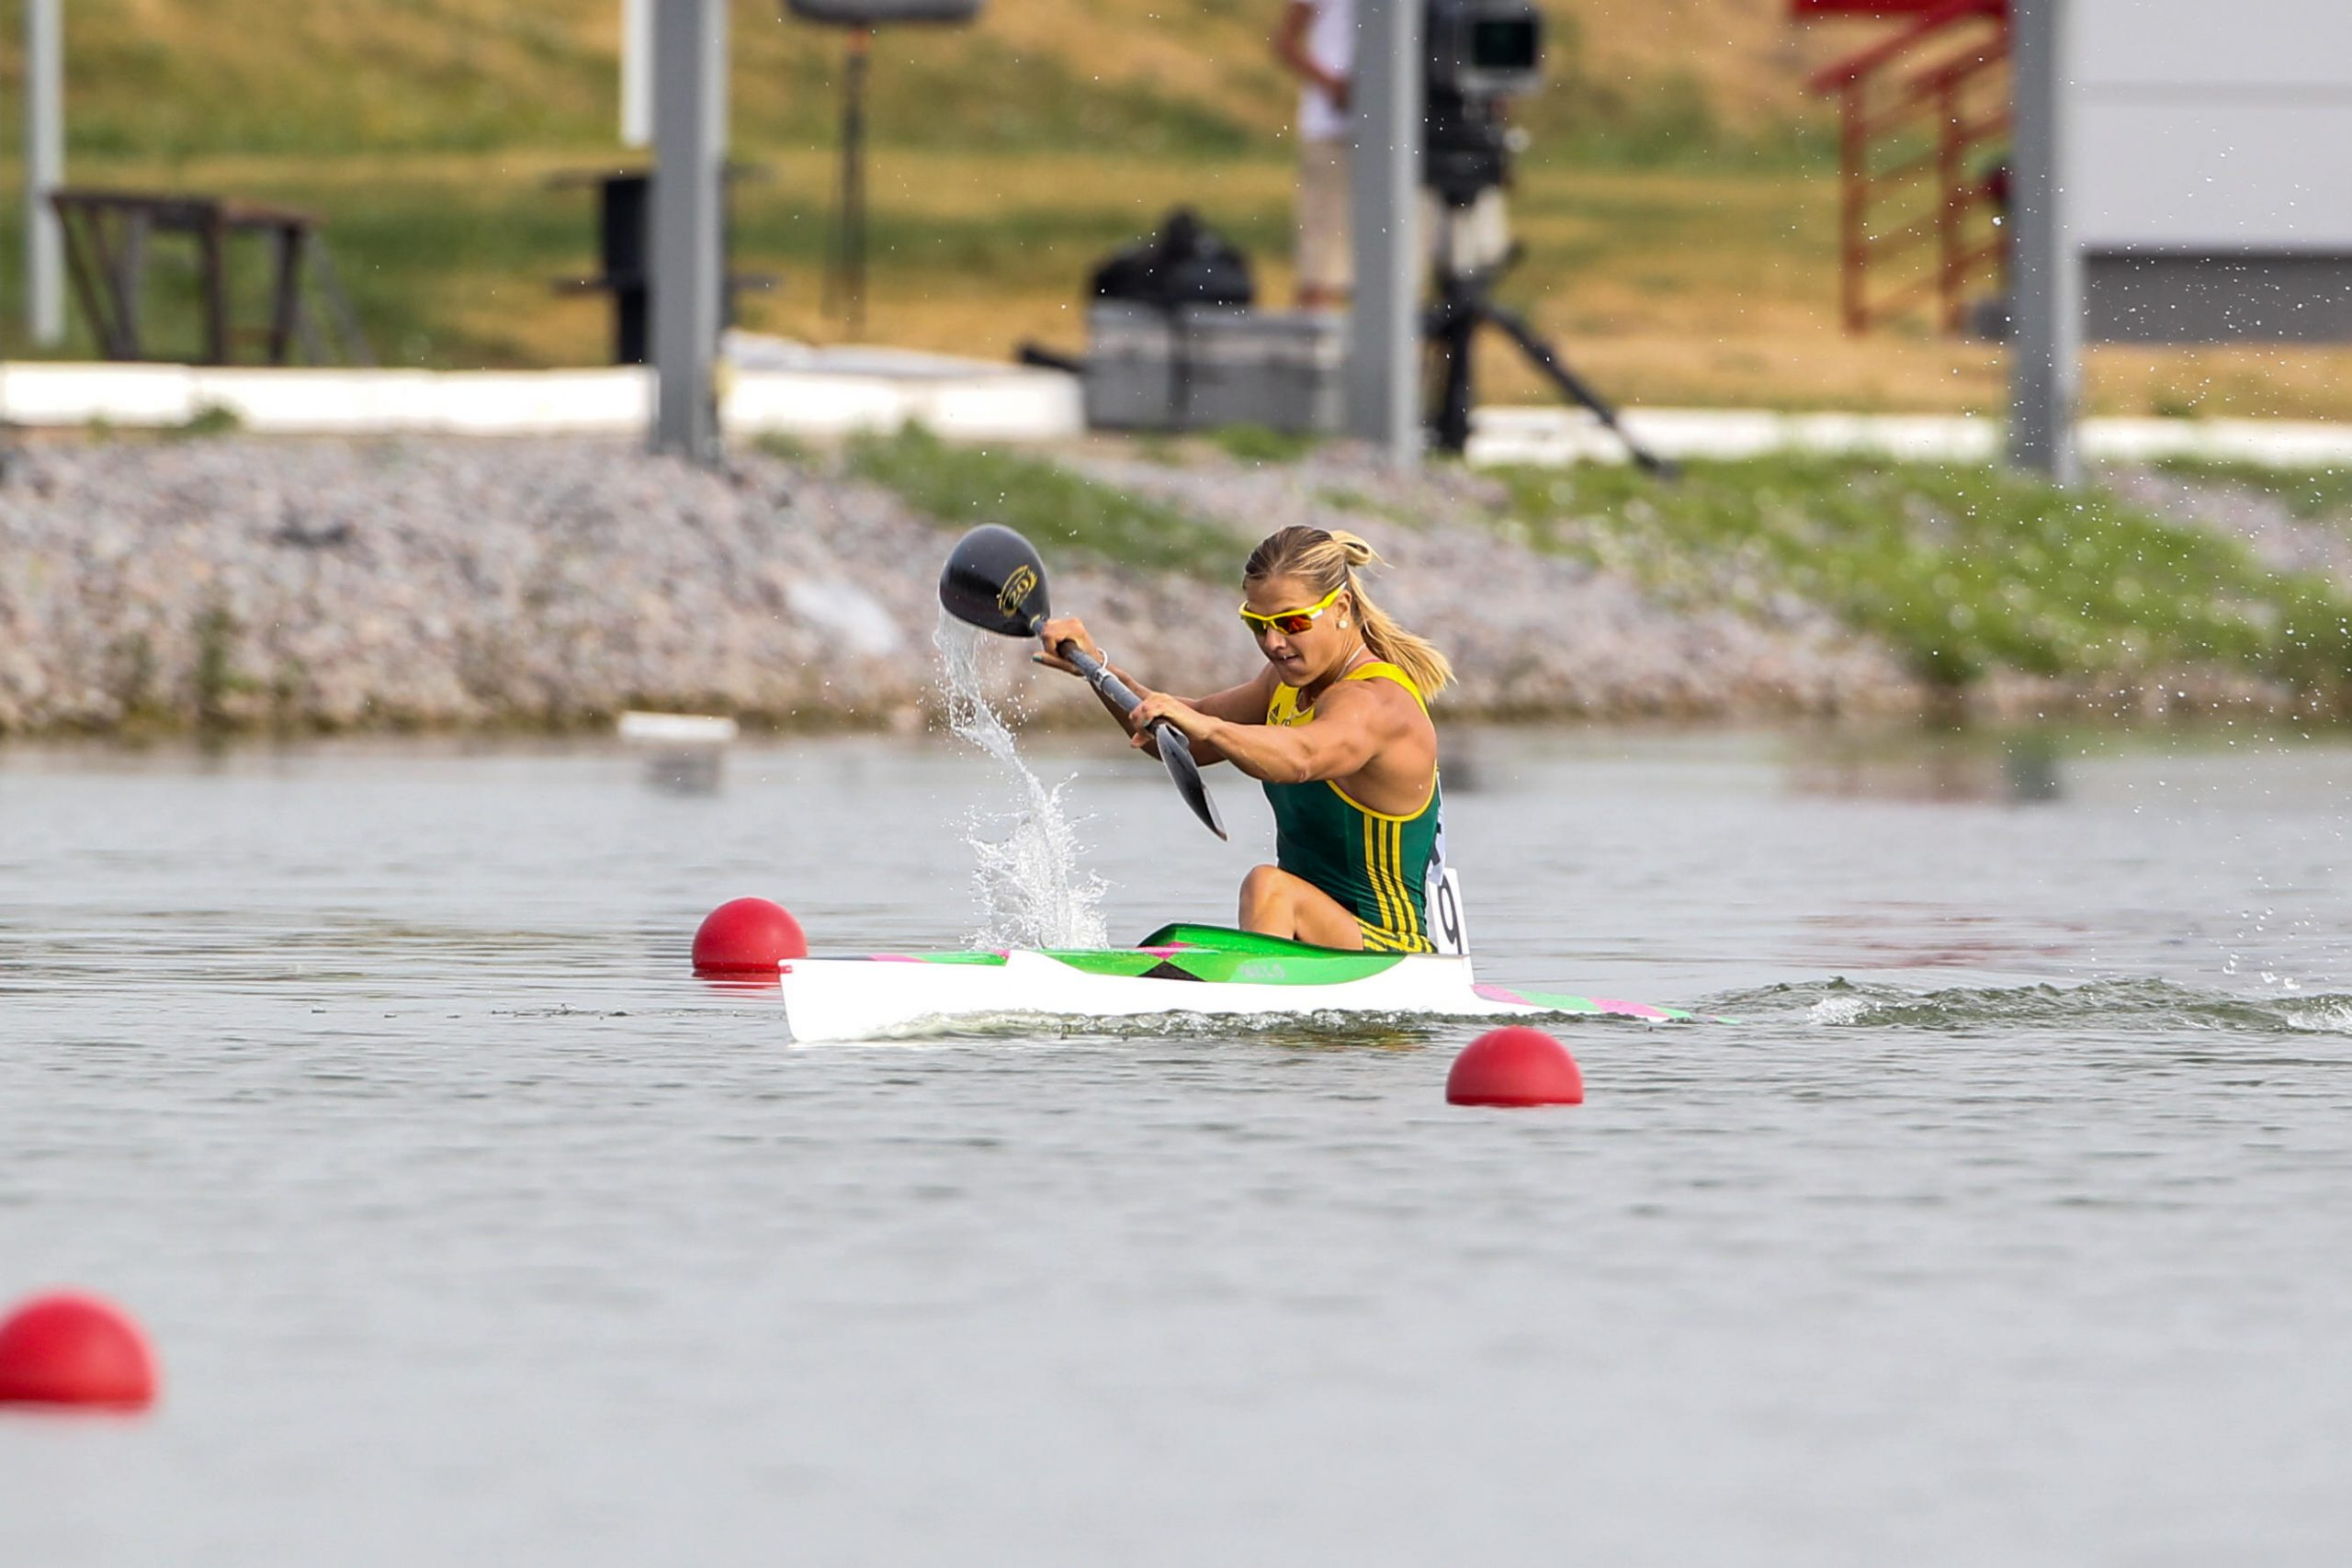 Olympian Hartley races to bronze in Russia